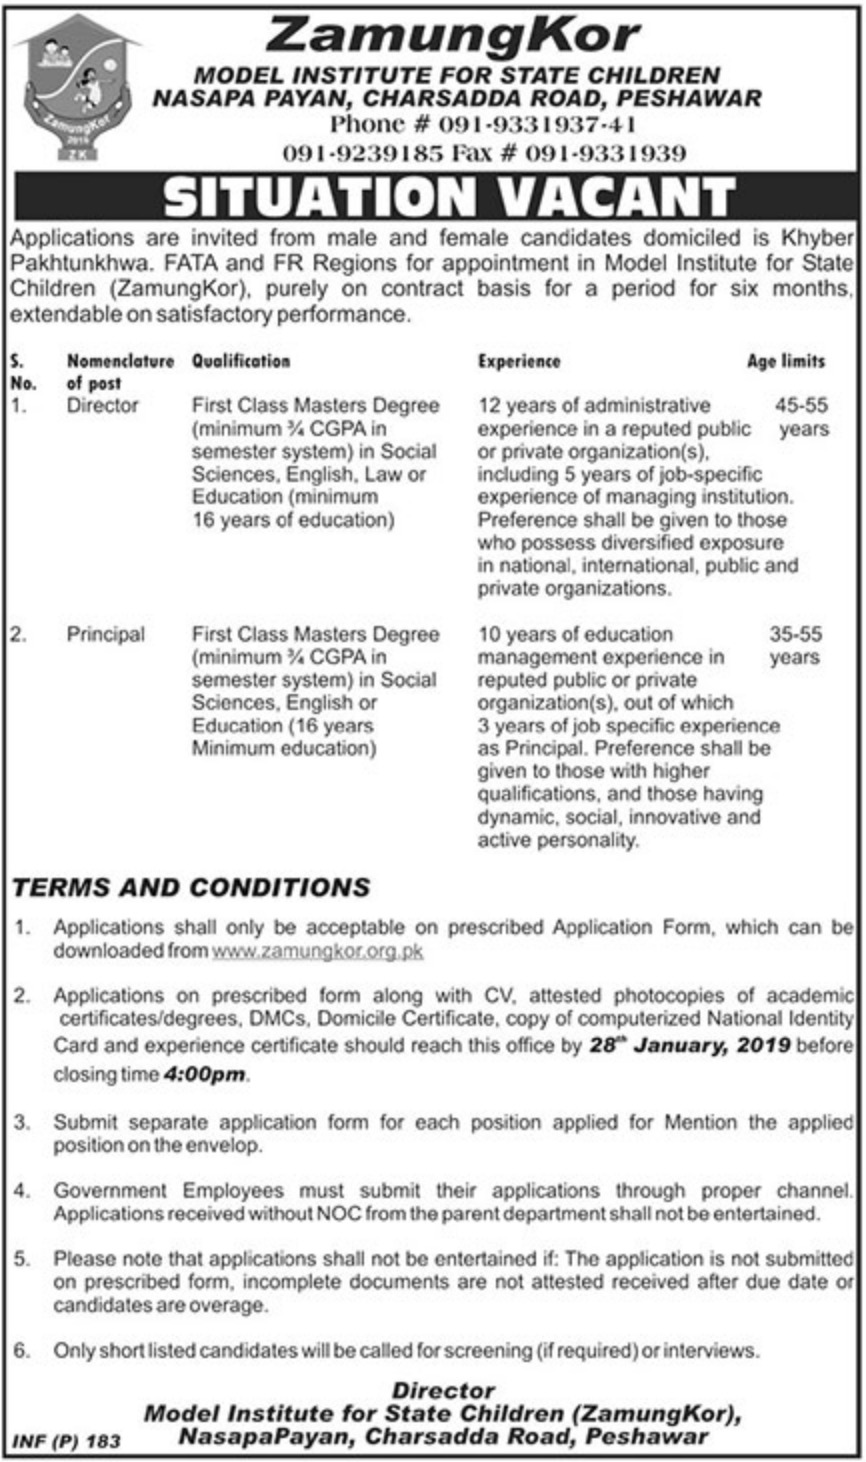 Zamung Kor Model Institute for State Children Peshawar Jobs 2019 KPK